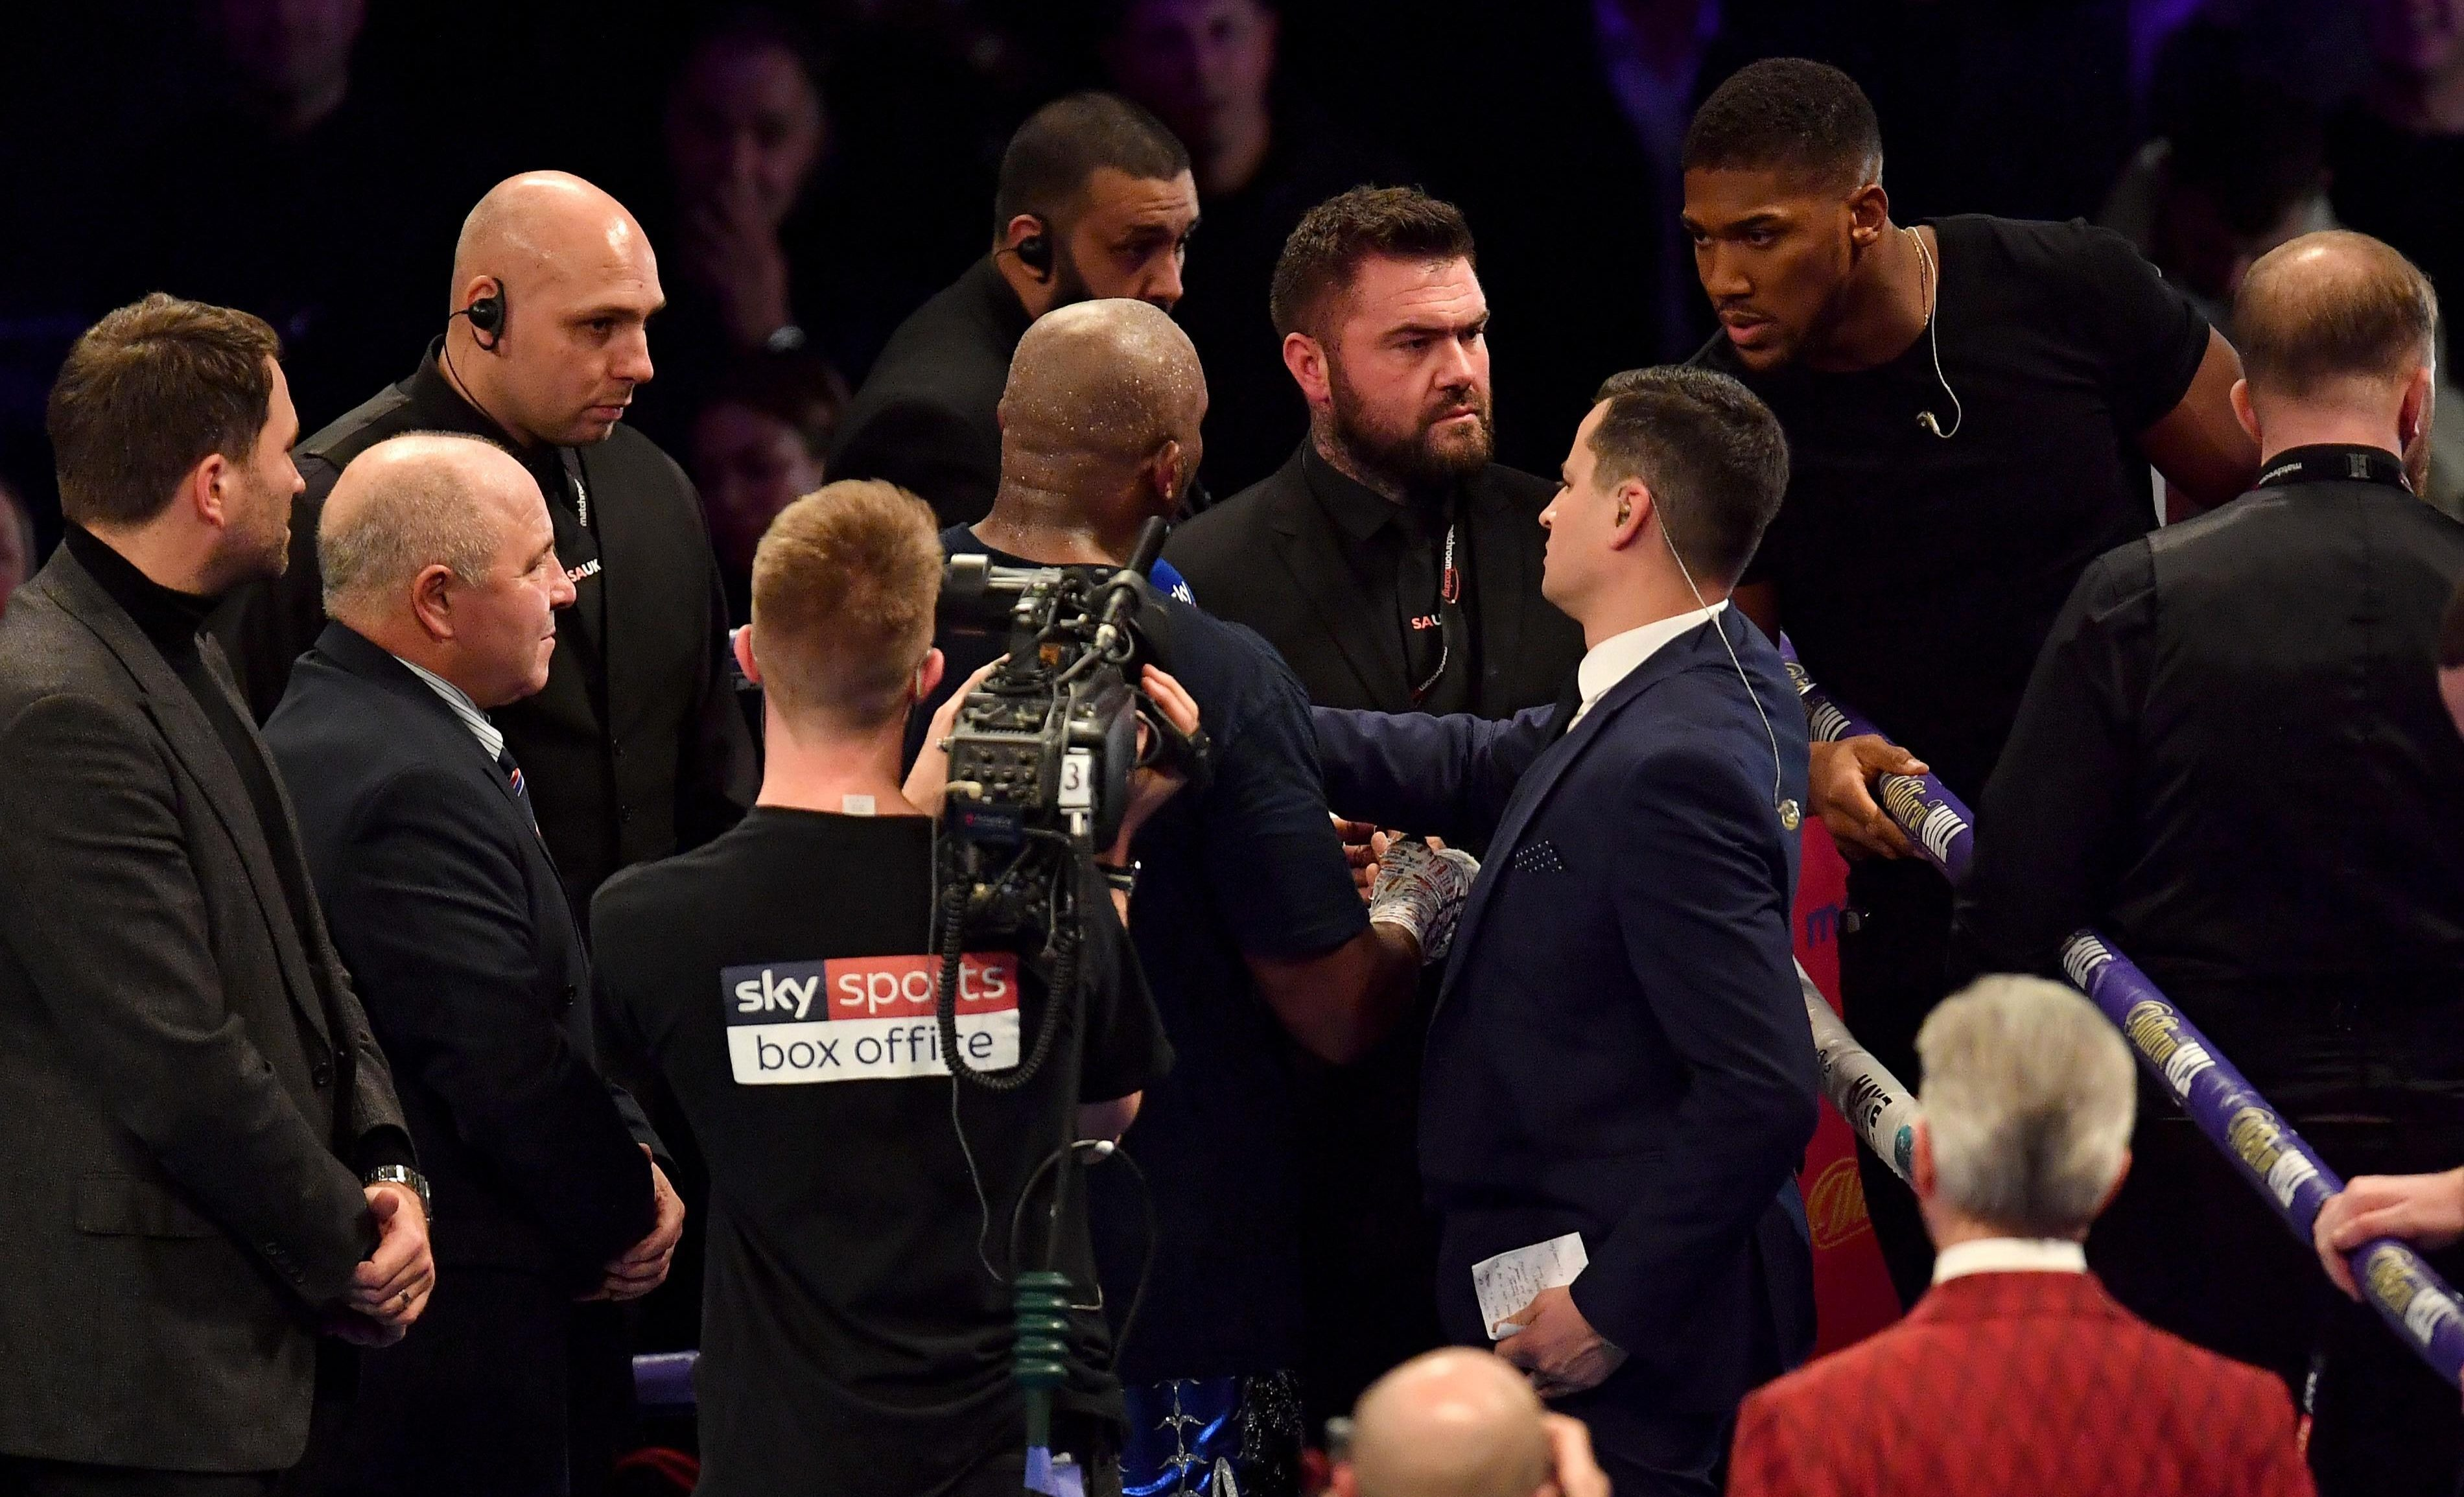 Anthony Joshua climbed in the ring after Dillian Whyte's last fight but was booed out